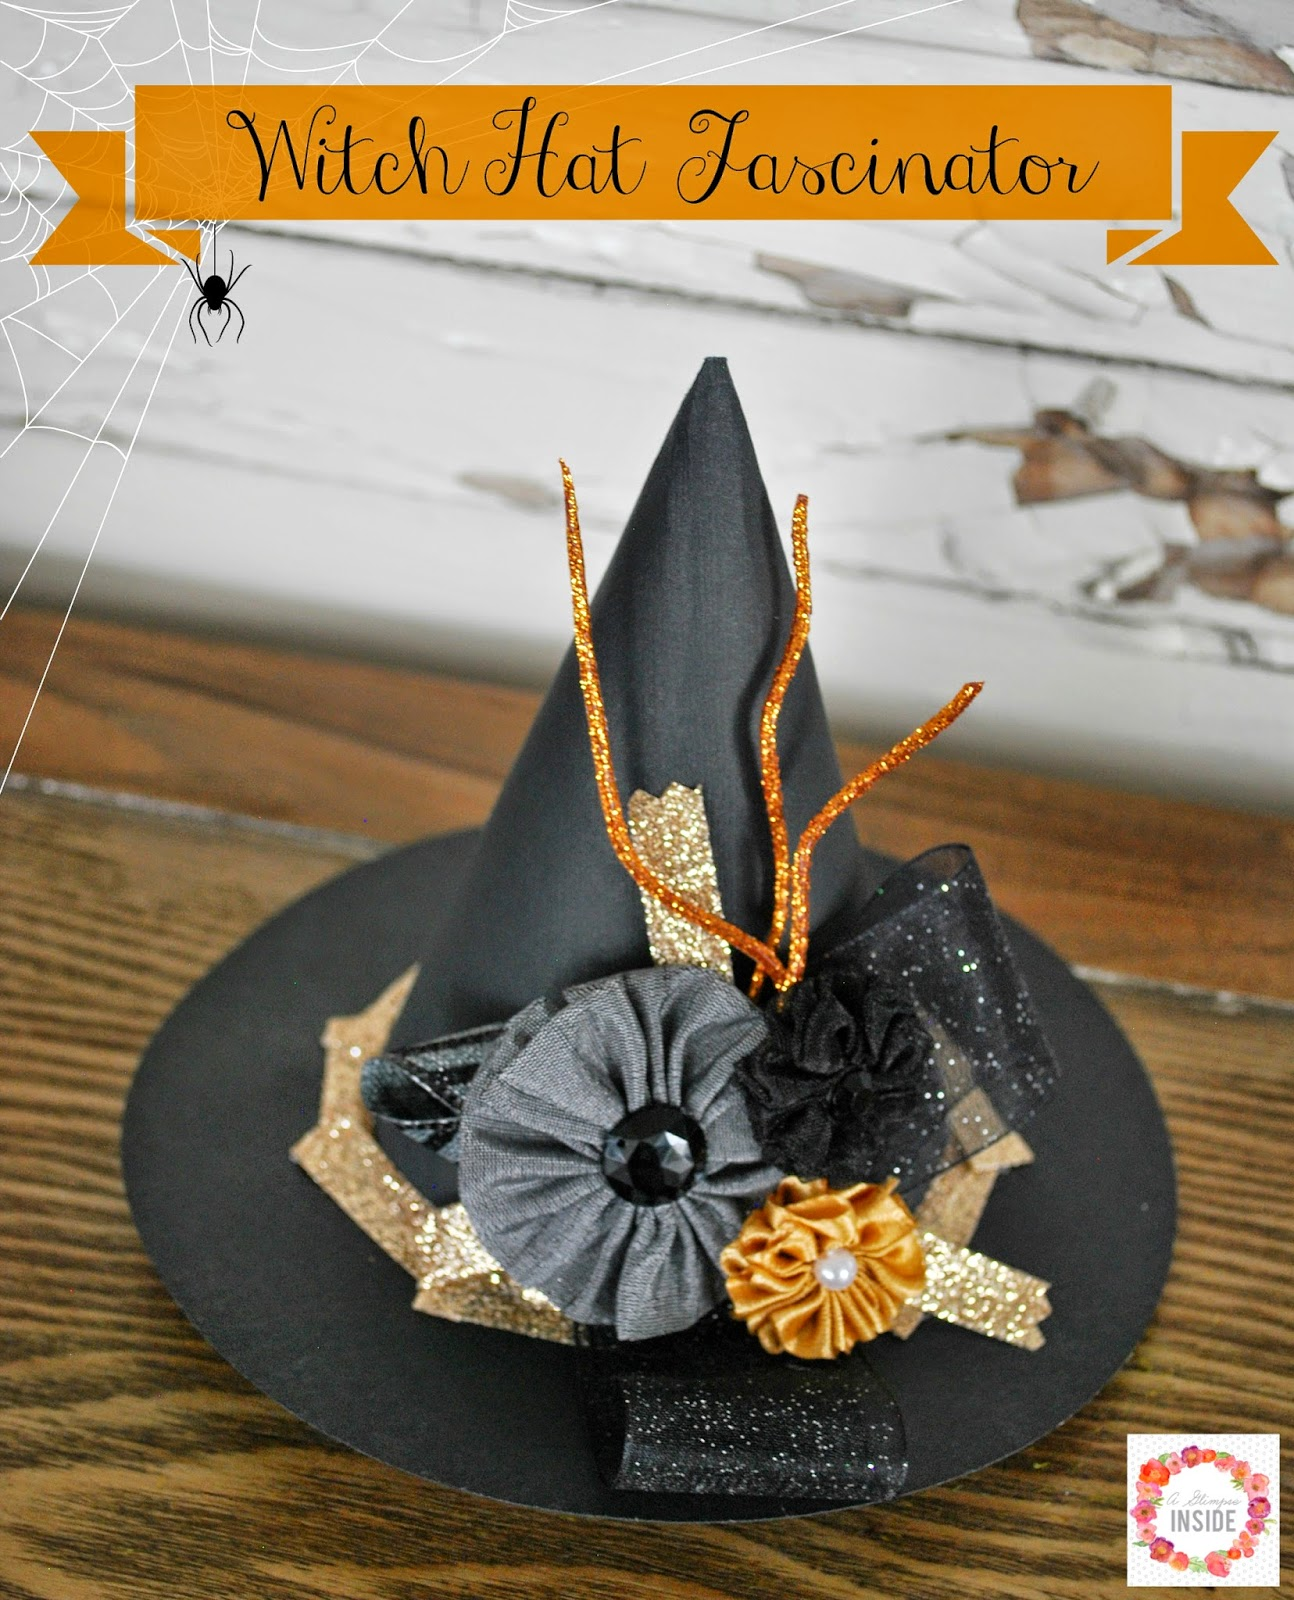 http://www.aglimpseinsideblog.com/2014/10/witch-hat-fascinator.html